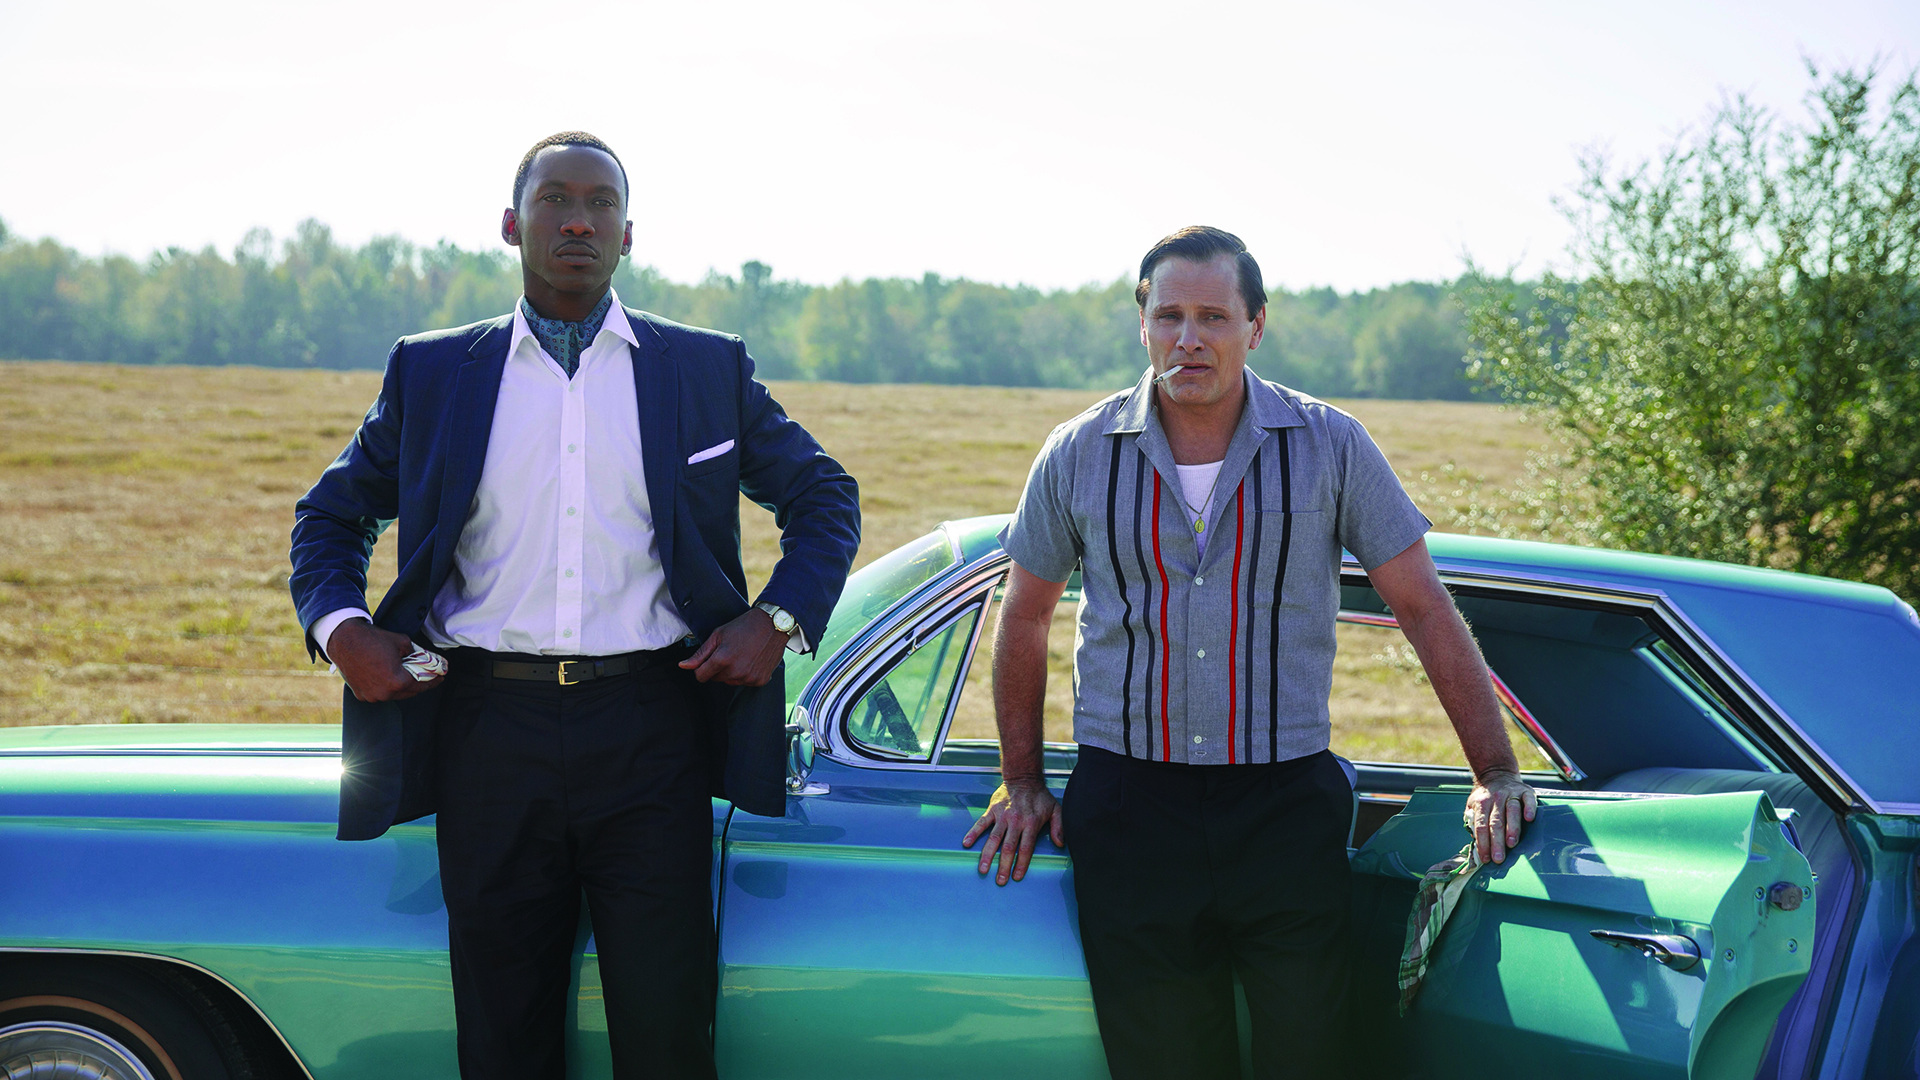 Review: 'Green Book' a pleasant ride over a bumpy road